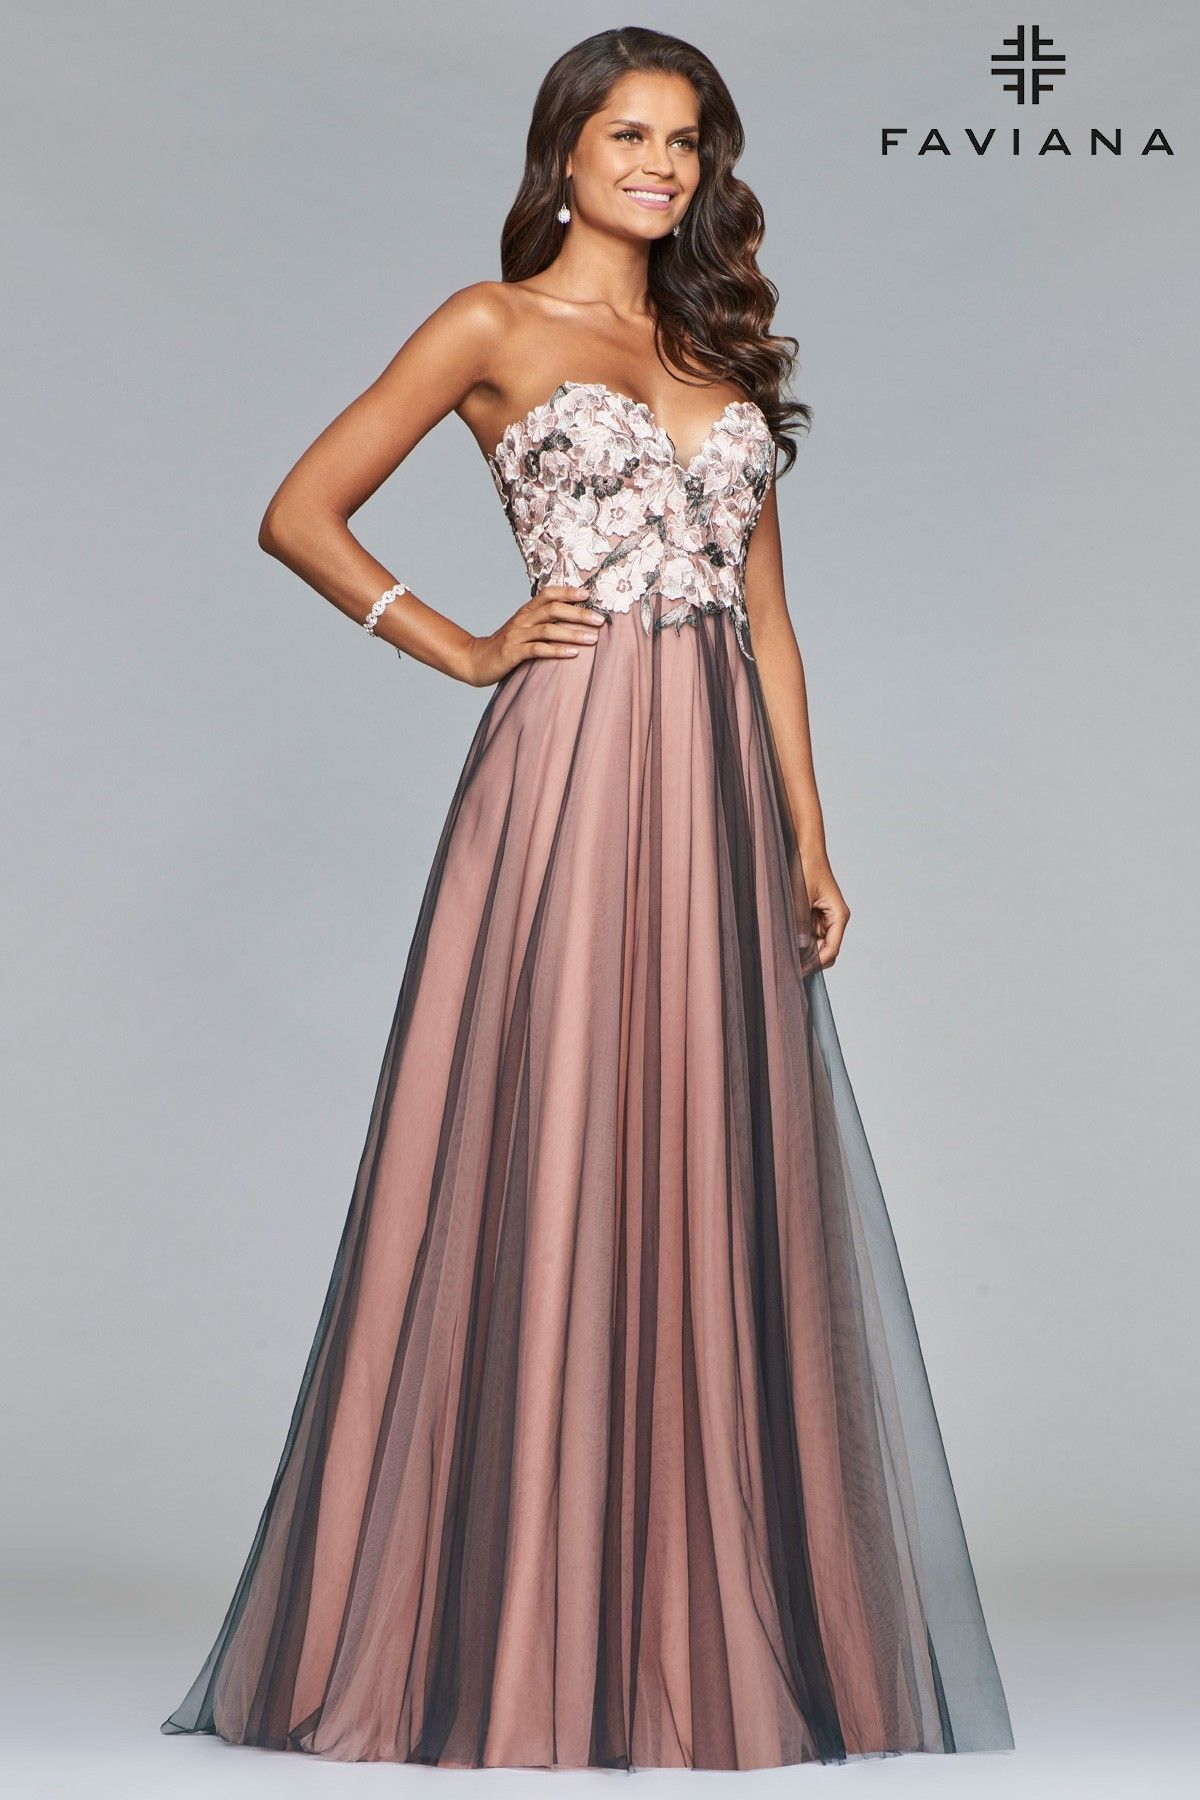 5f1890010bb This princess gown features a full skirt of dusty pink with smoke mesh  overlay. The sweetheart top features gray and pink floral lace appliques